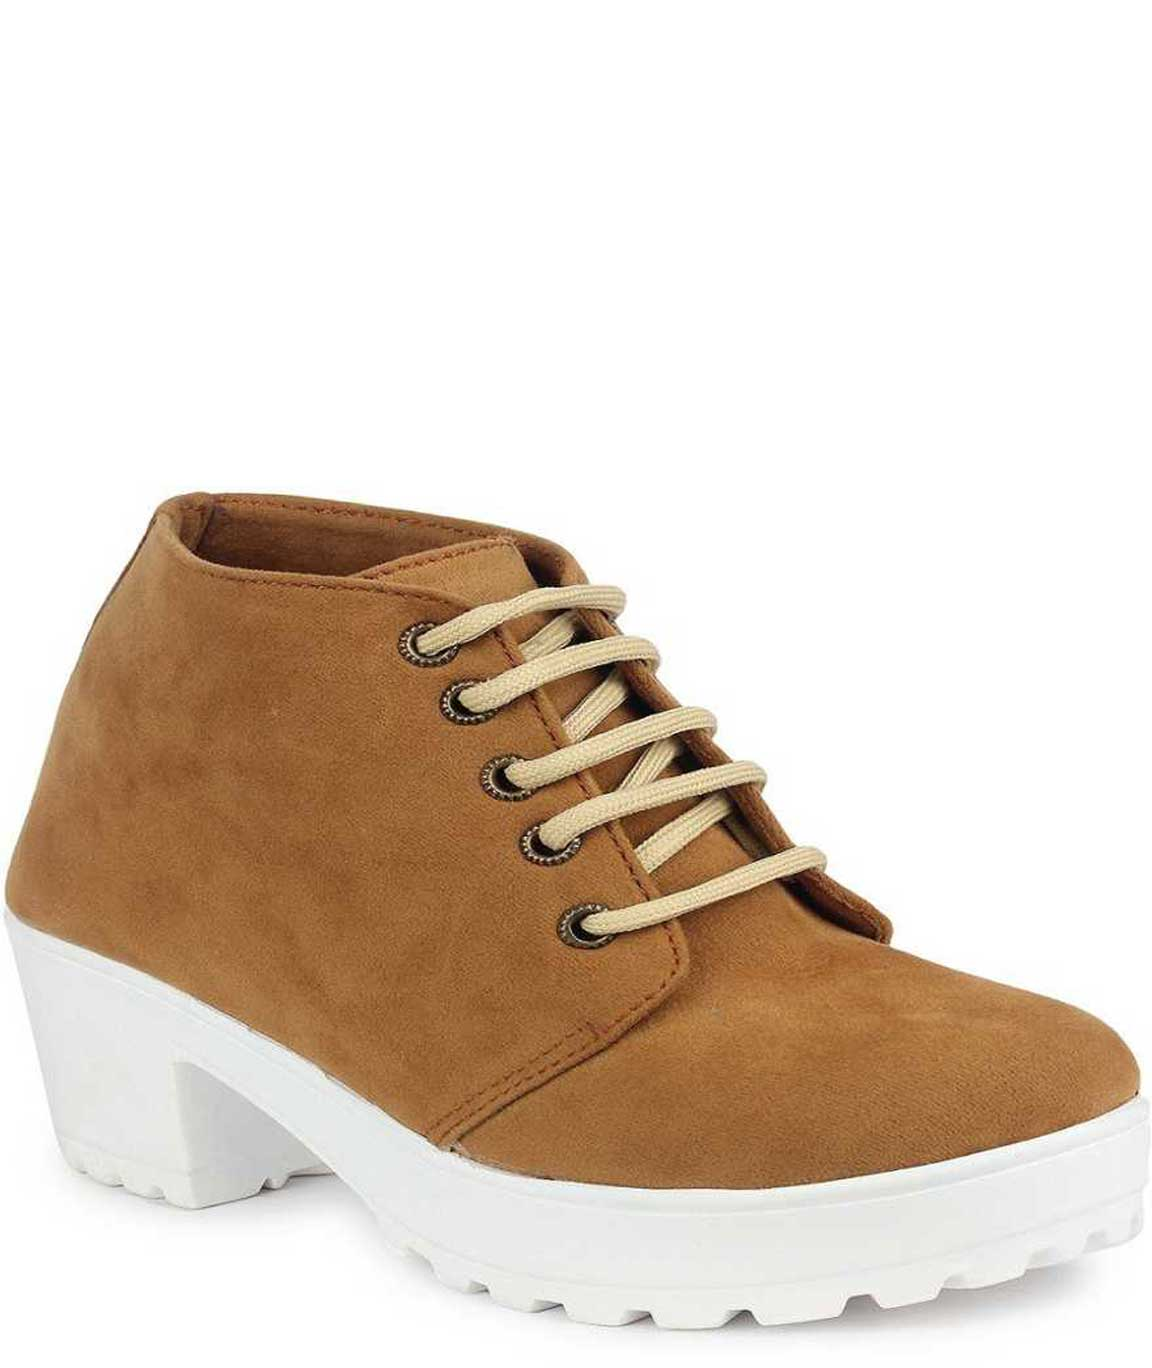 BOOT FOR WOMEN (TAN-WHITE)